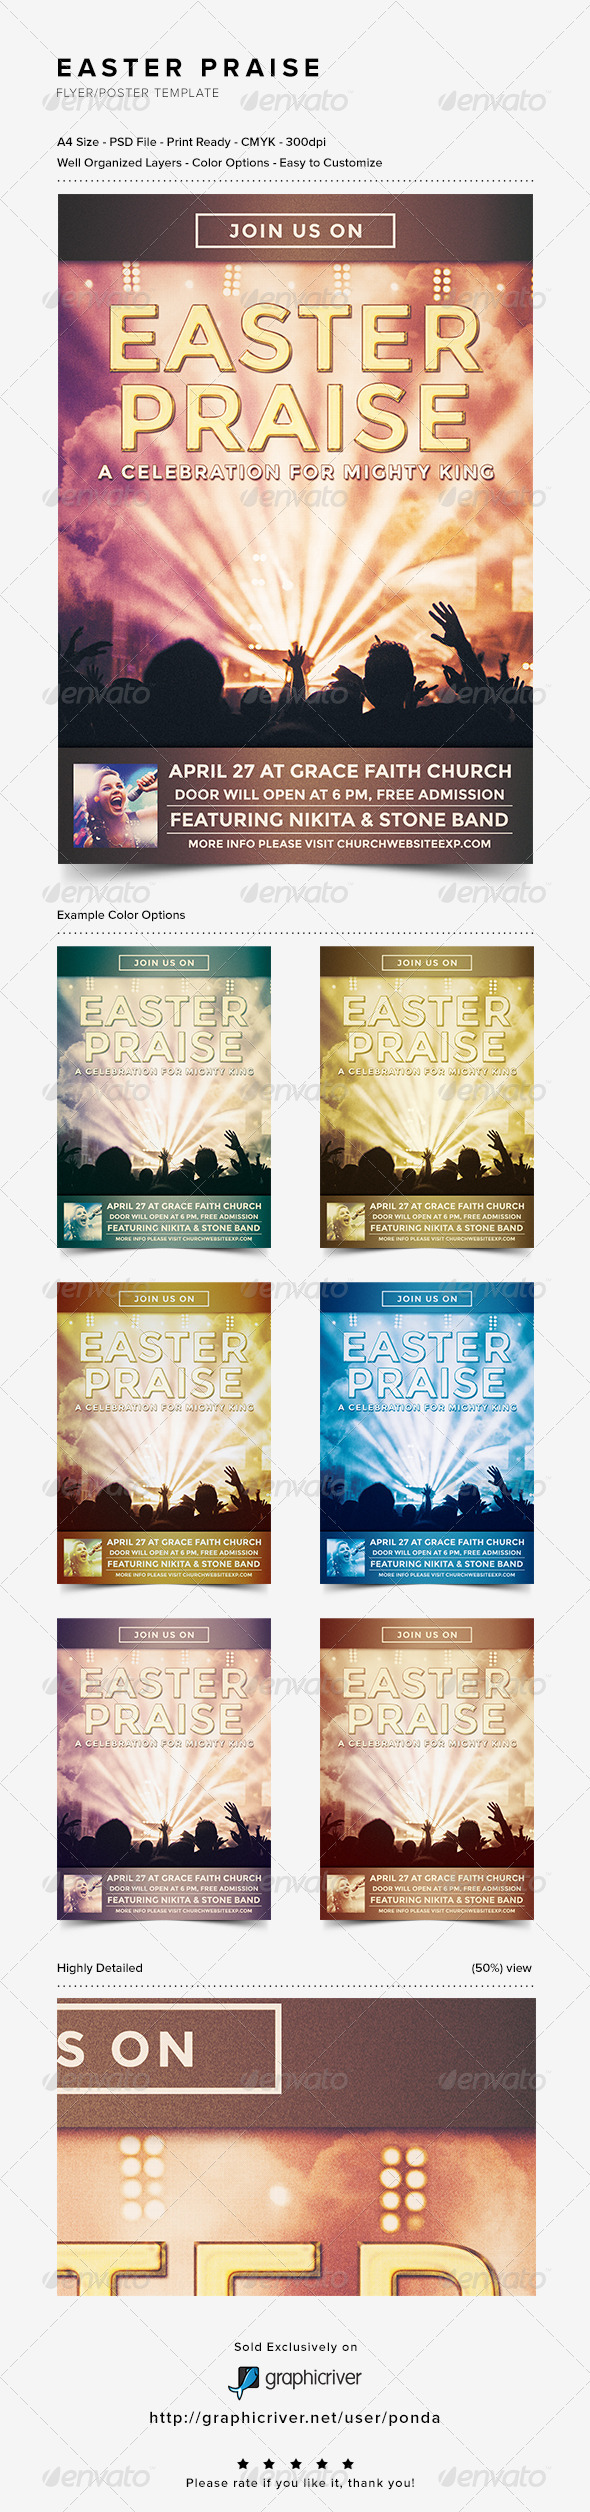 Easter Praise Flyer/Poster Template - Church Flyers